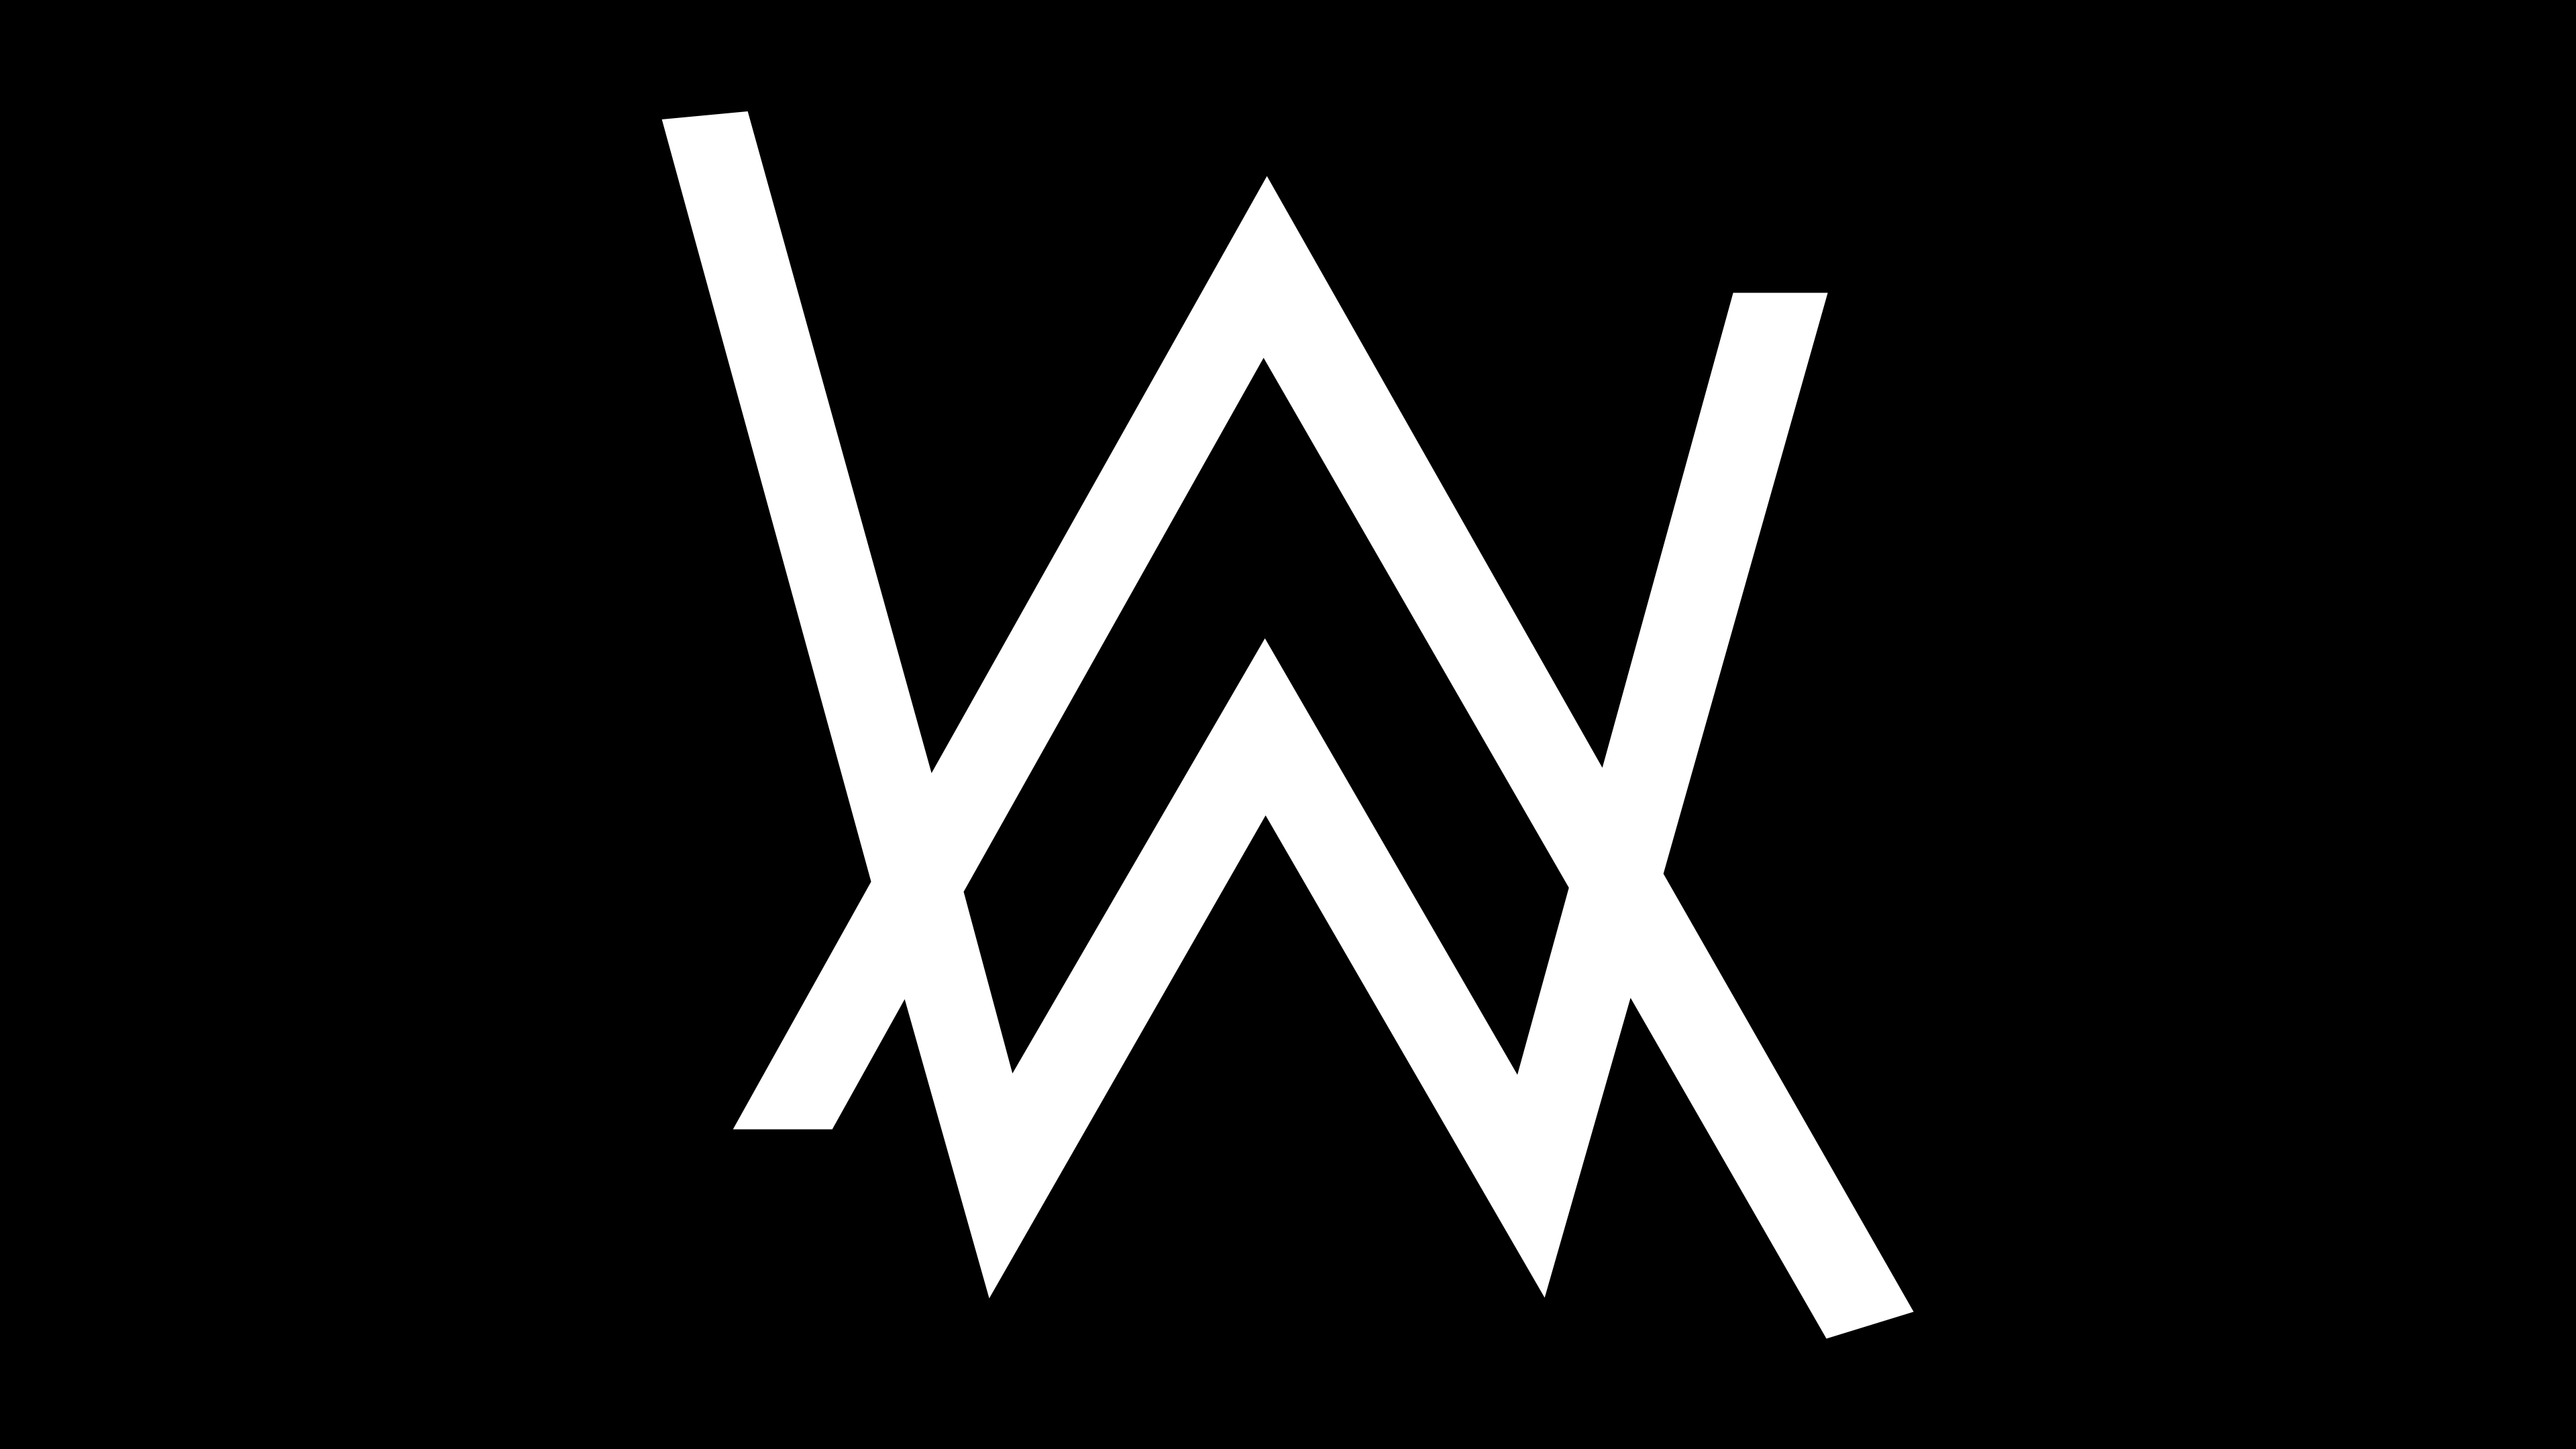 Alan Walker Logo 4K by IqbaLeAnggoro 3840x2160